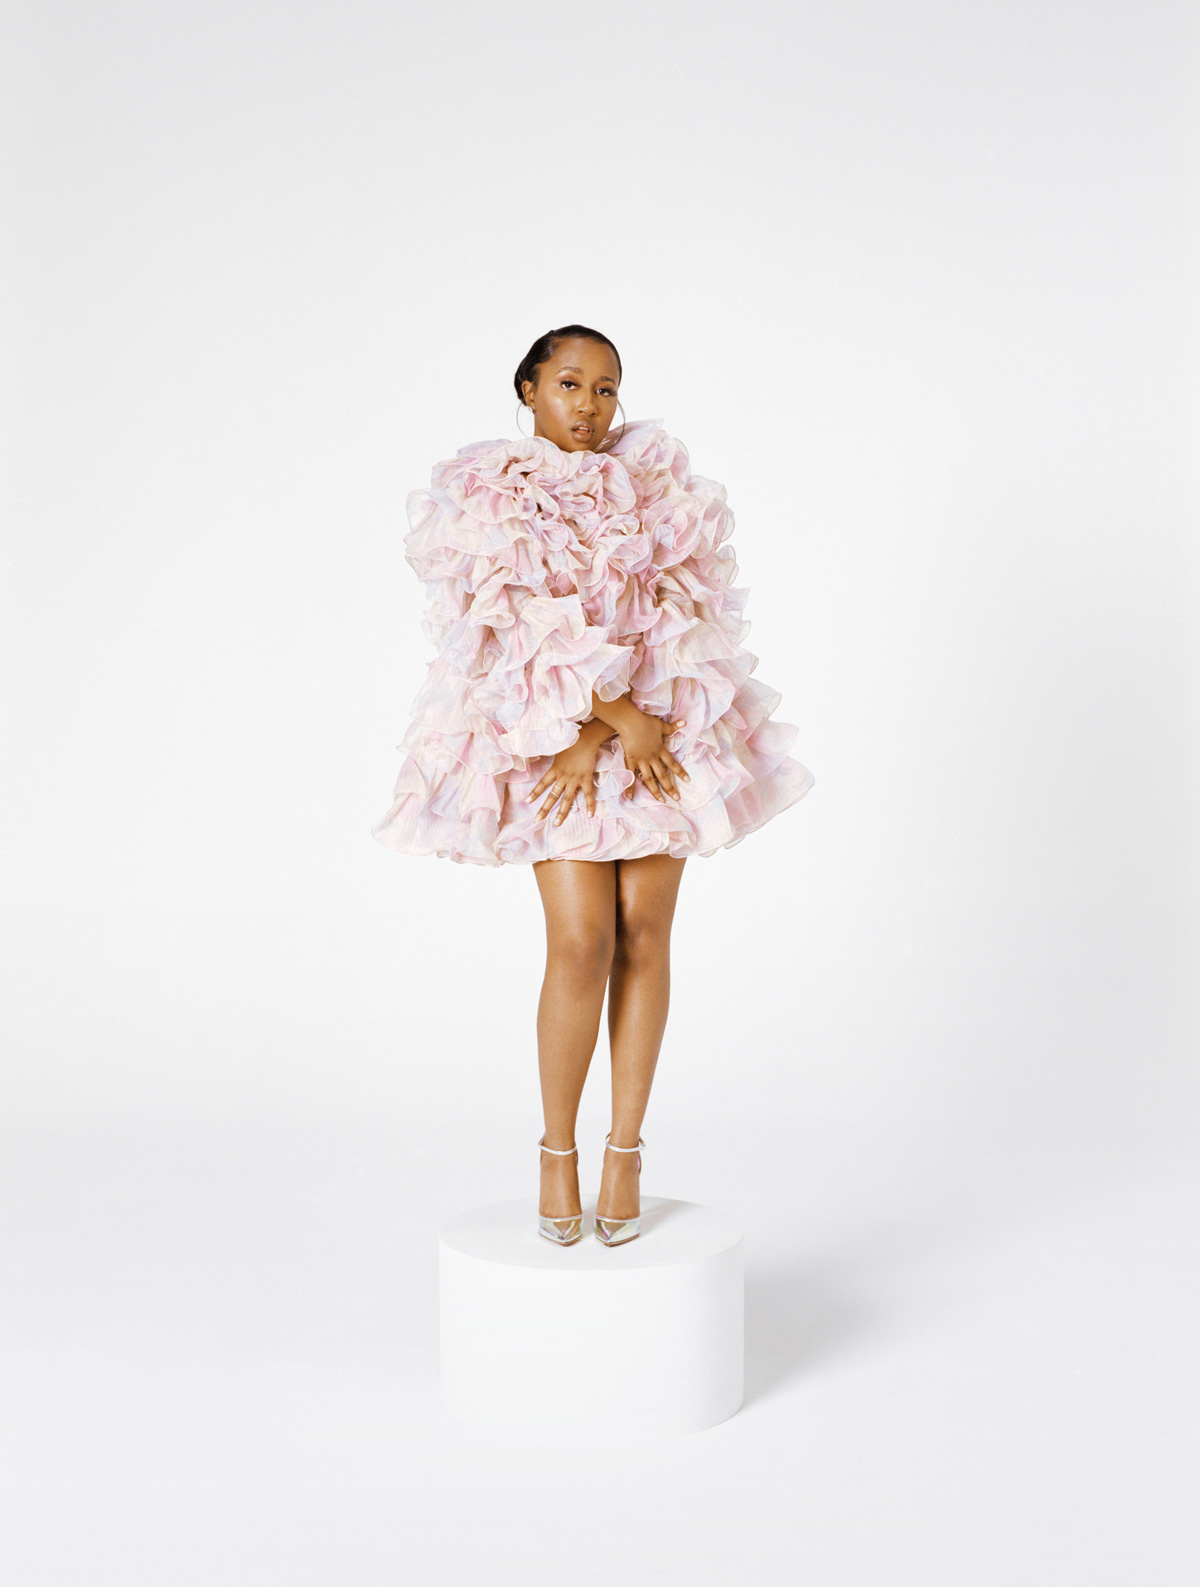 Yung Baby Tate in a pink flower Marc Jacobs dress